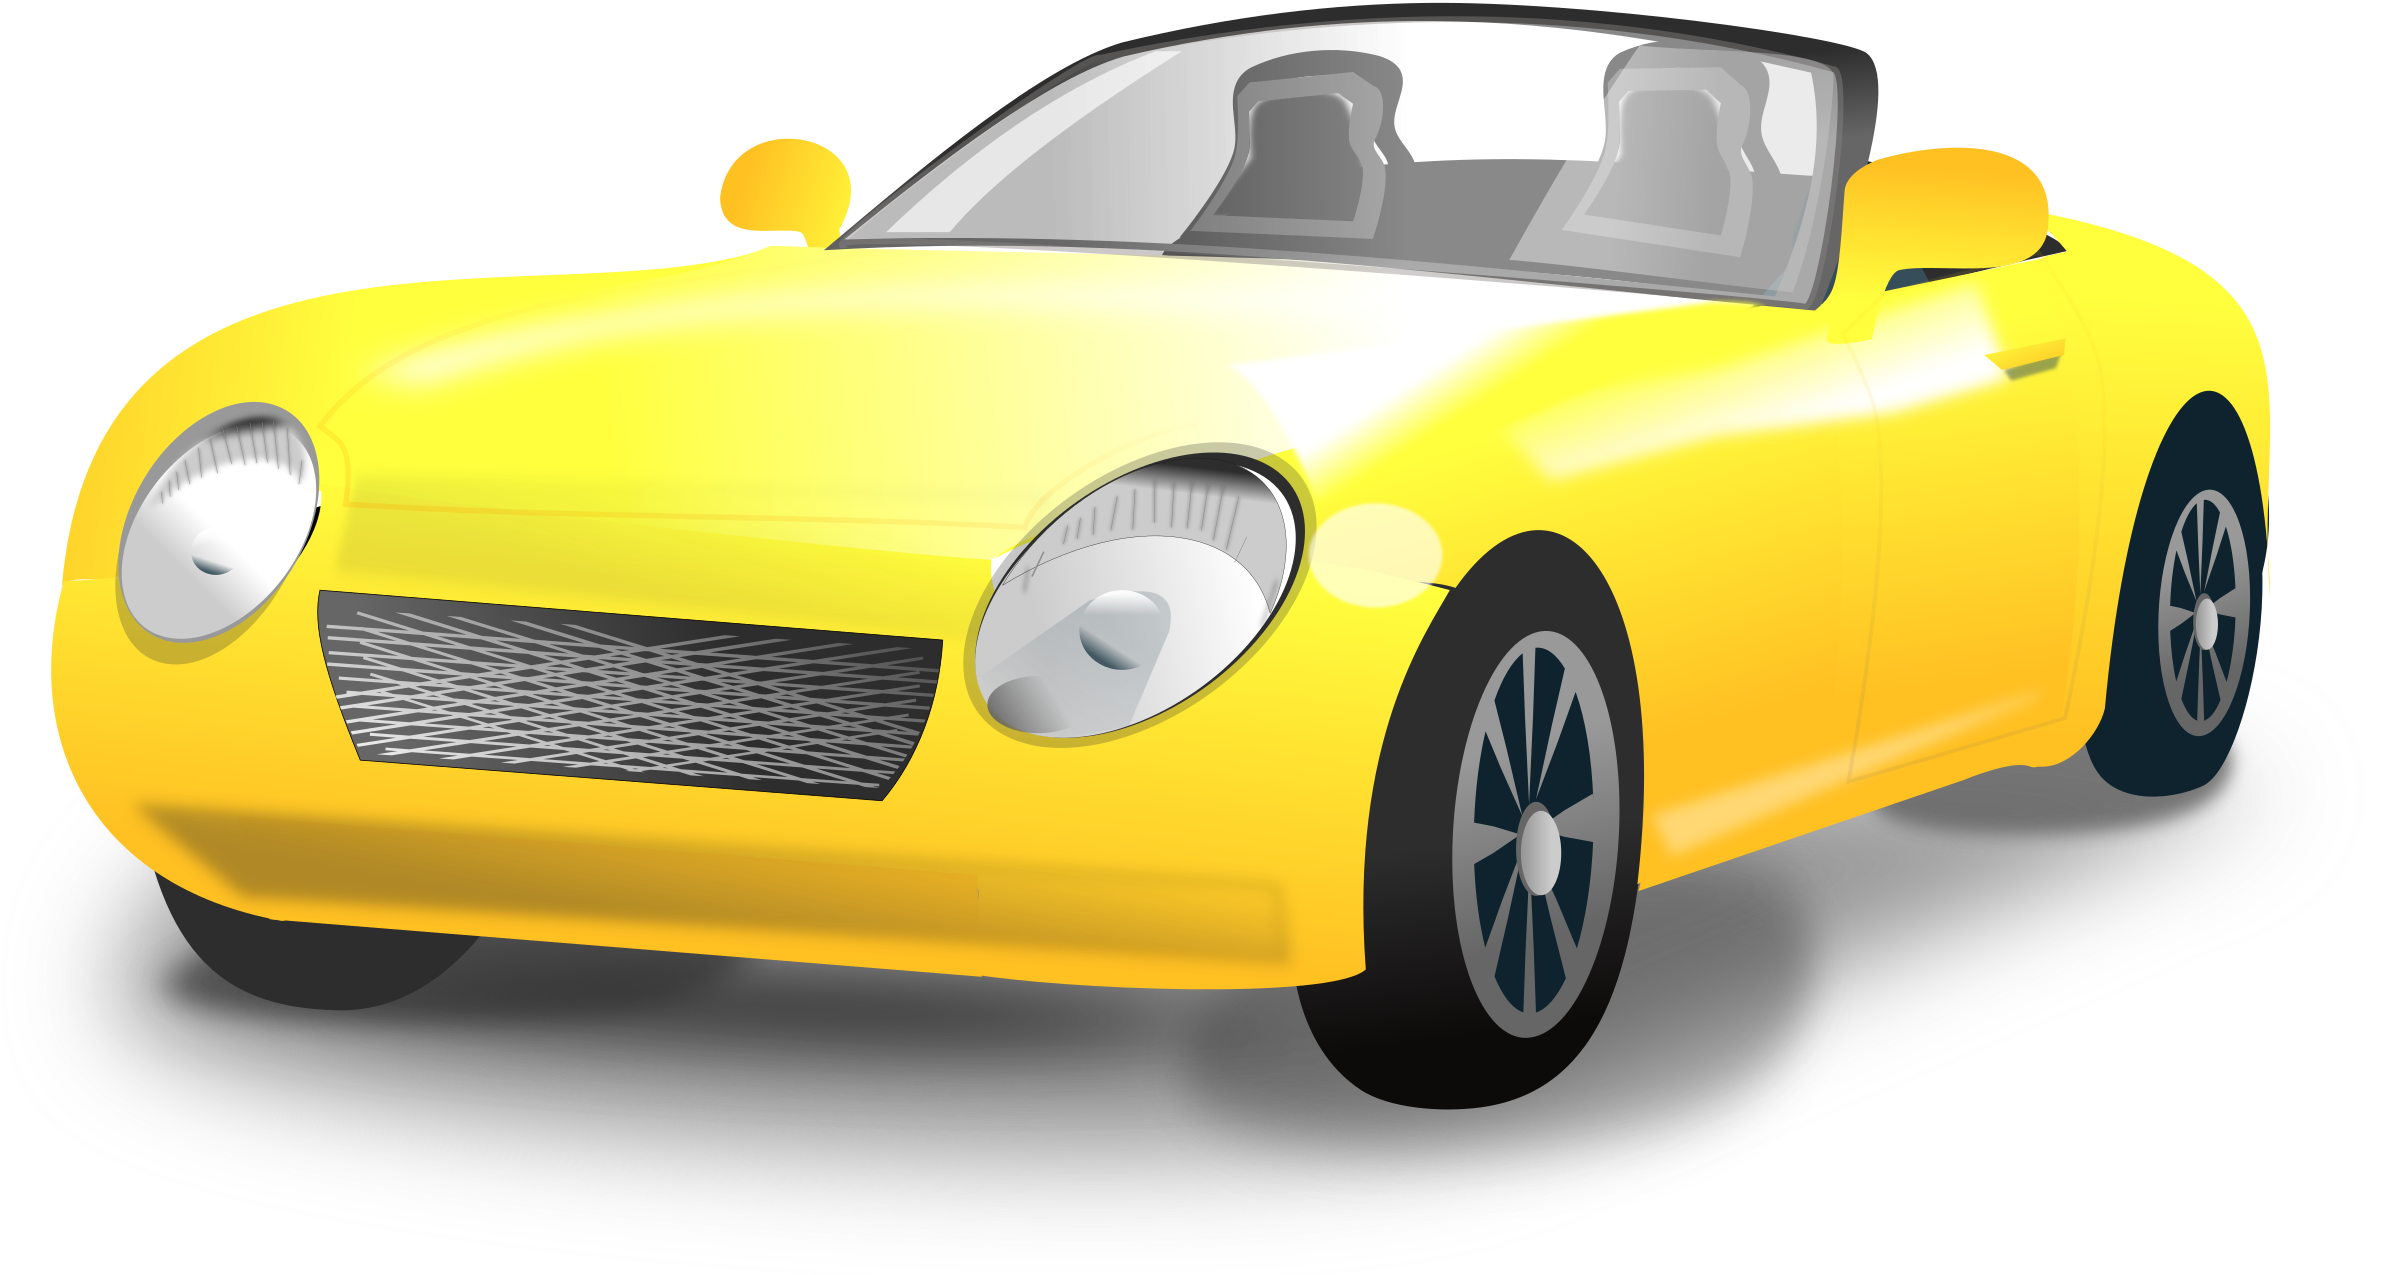 Clipart car convertible. Yellow sports big image